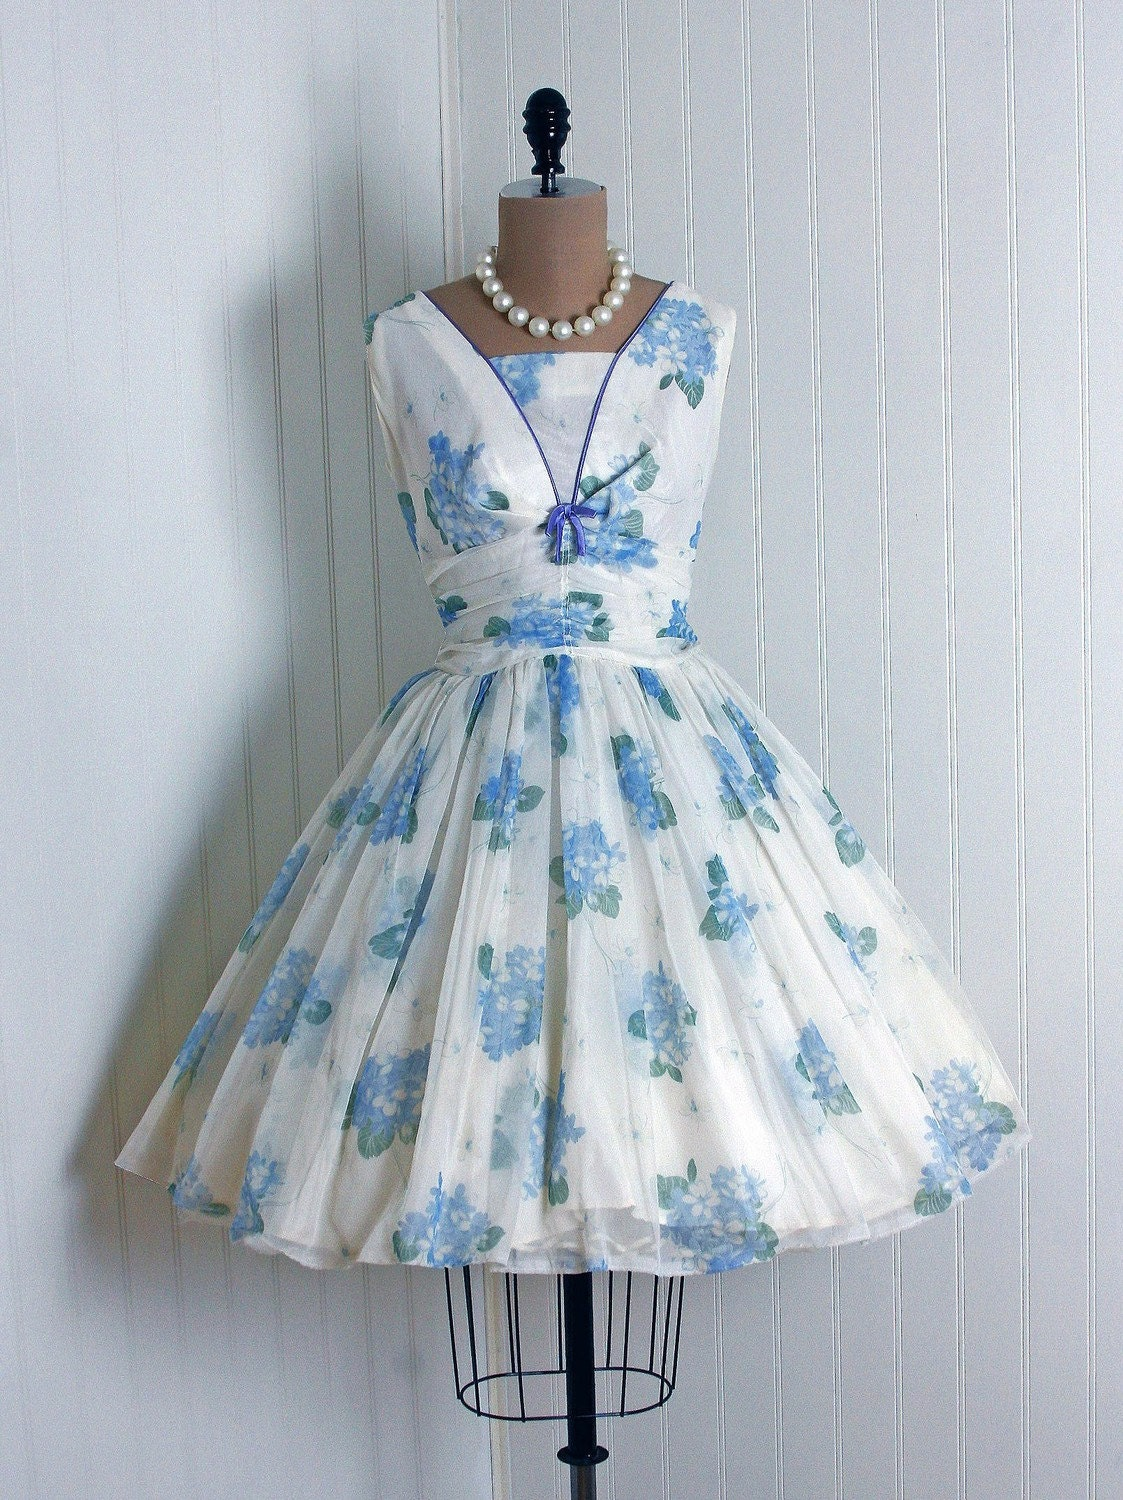 1950's Vintage Blue-Floral Watercolor White-Garden Flowing Scenic-Print Botanical Chiffon-Couture Sleeveless Shelf-Bust Bow Ruched Nipped-Waist Rockabilly Ballerina-Cupcake Princess Full Circle-Skirt Bombshell Wedding Formal Cocktail Prom Party Dress